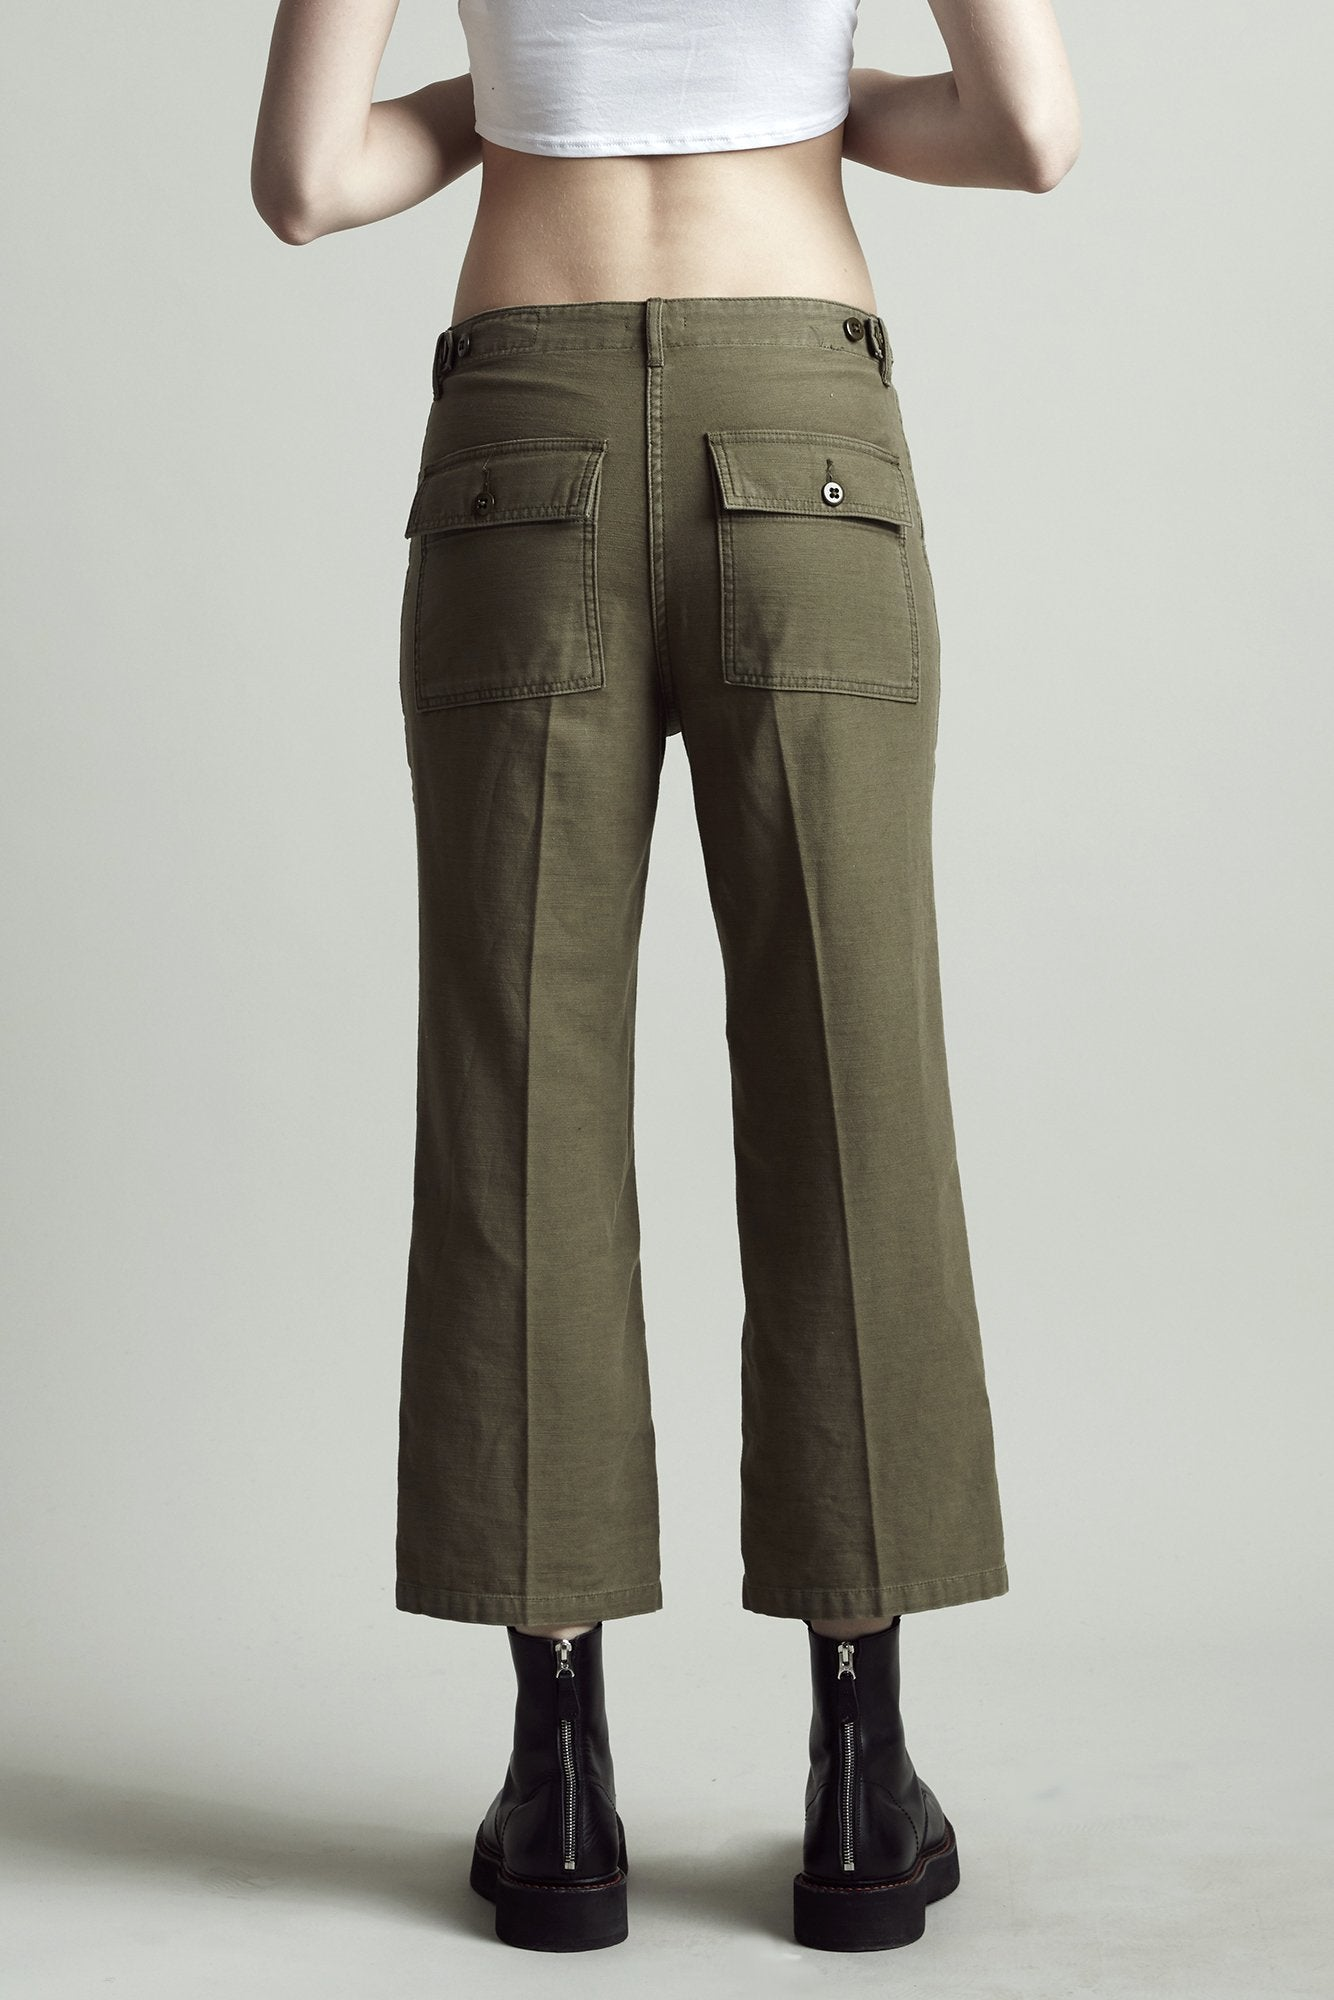 Straight Utility Pants – Fatigue Olive